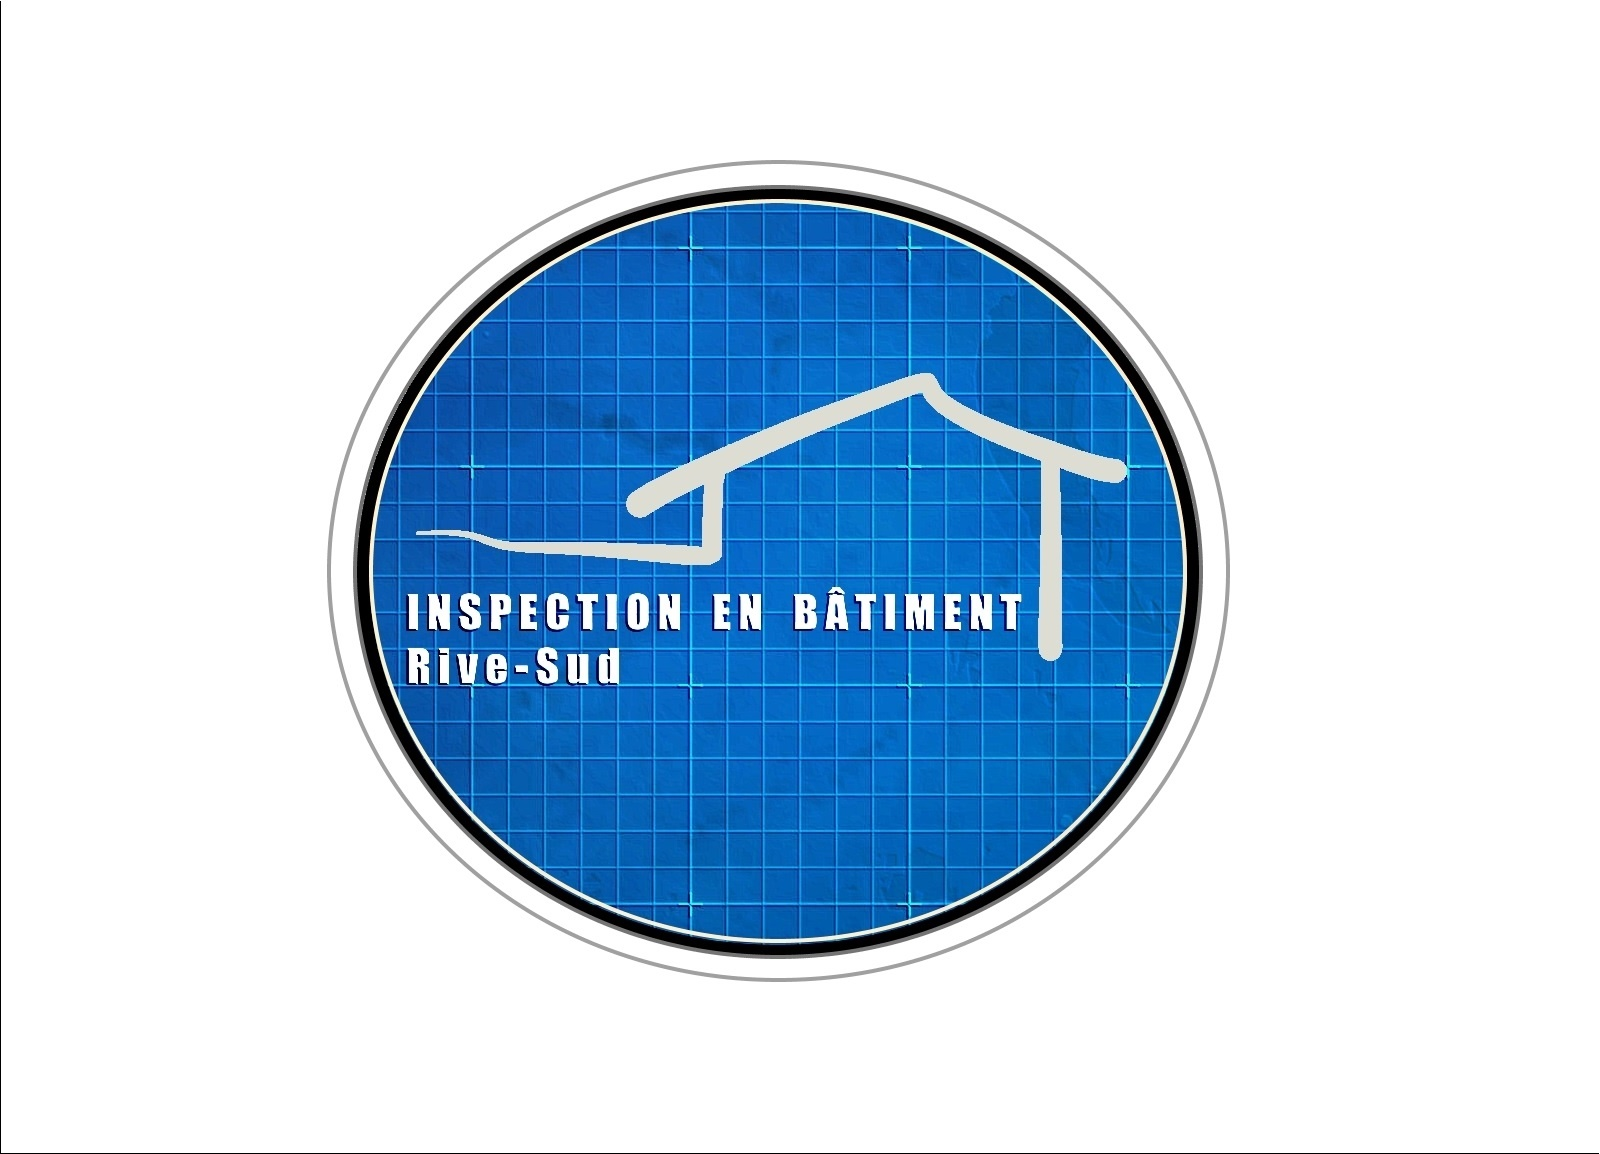 Inspection en bâtiment Rive-Sud